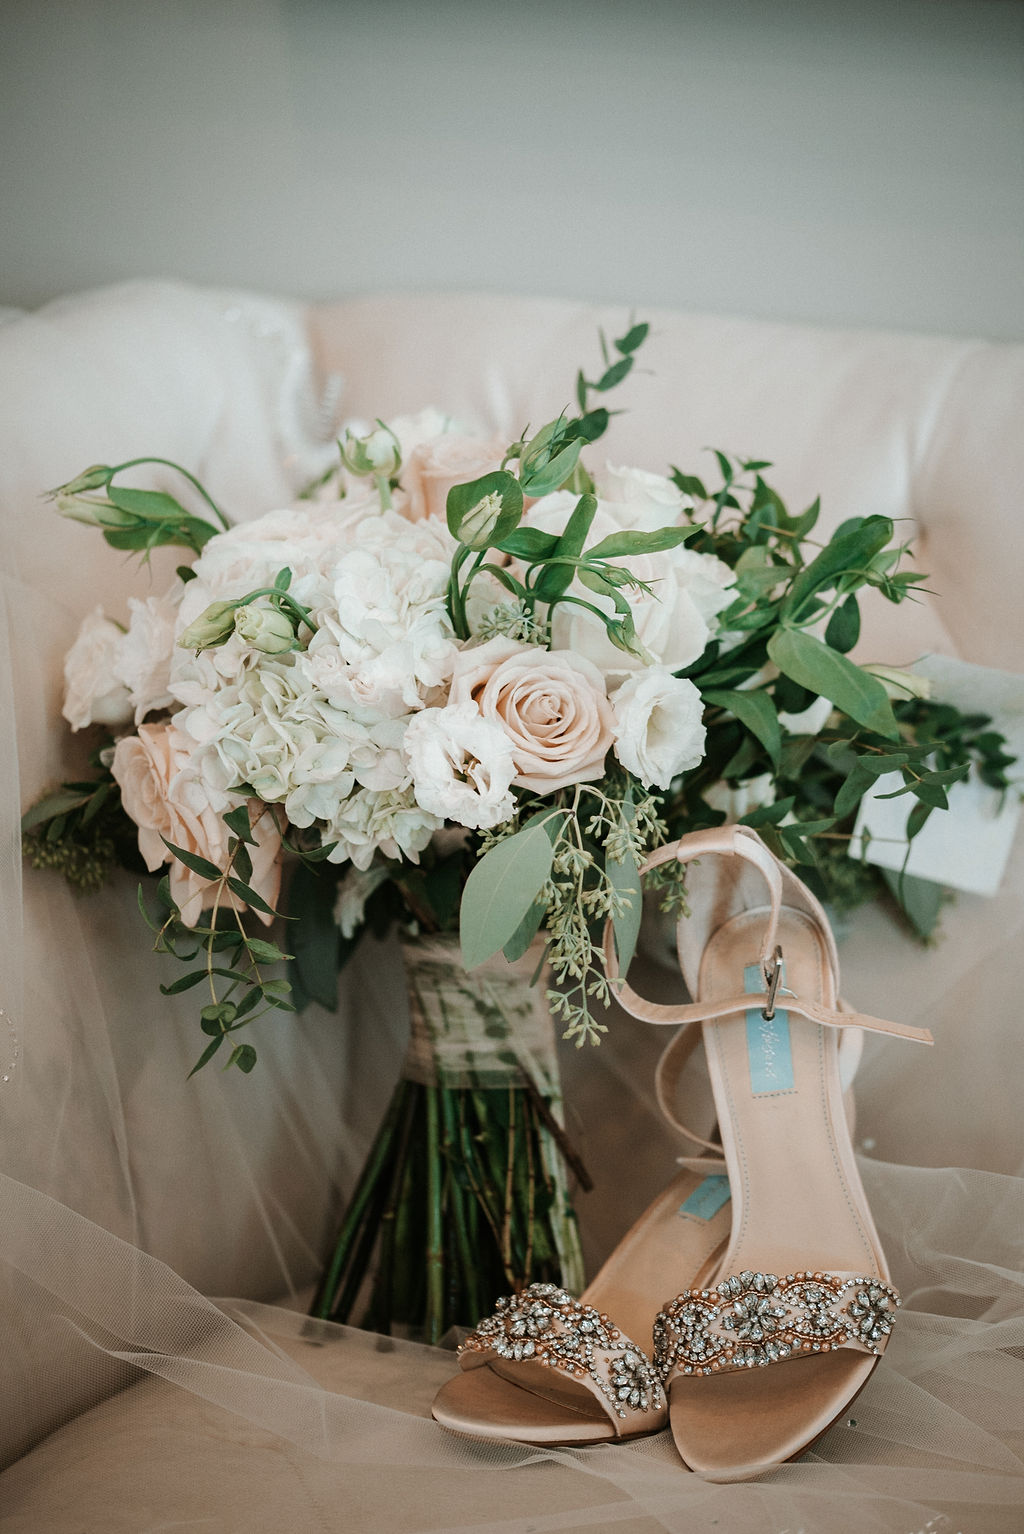 Detail Shot of Bride's Bouquet and Wedding Shoes